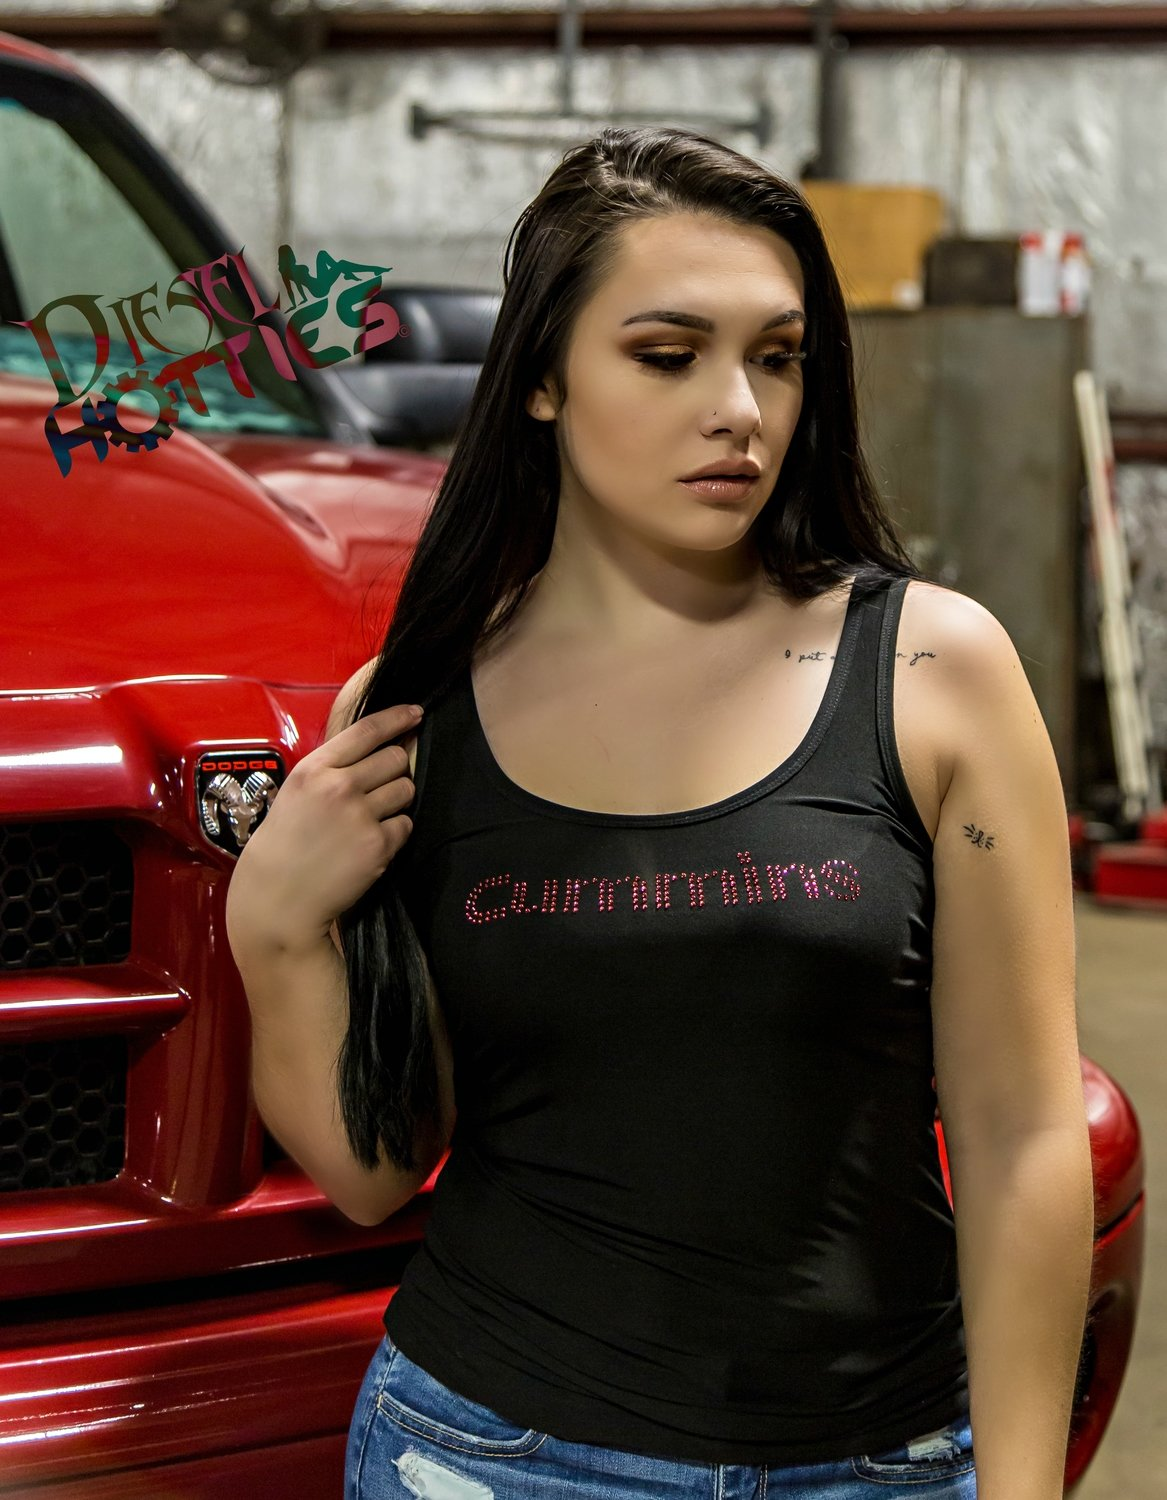 Diesel Hotties Black Cummins Tank